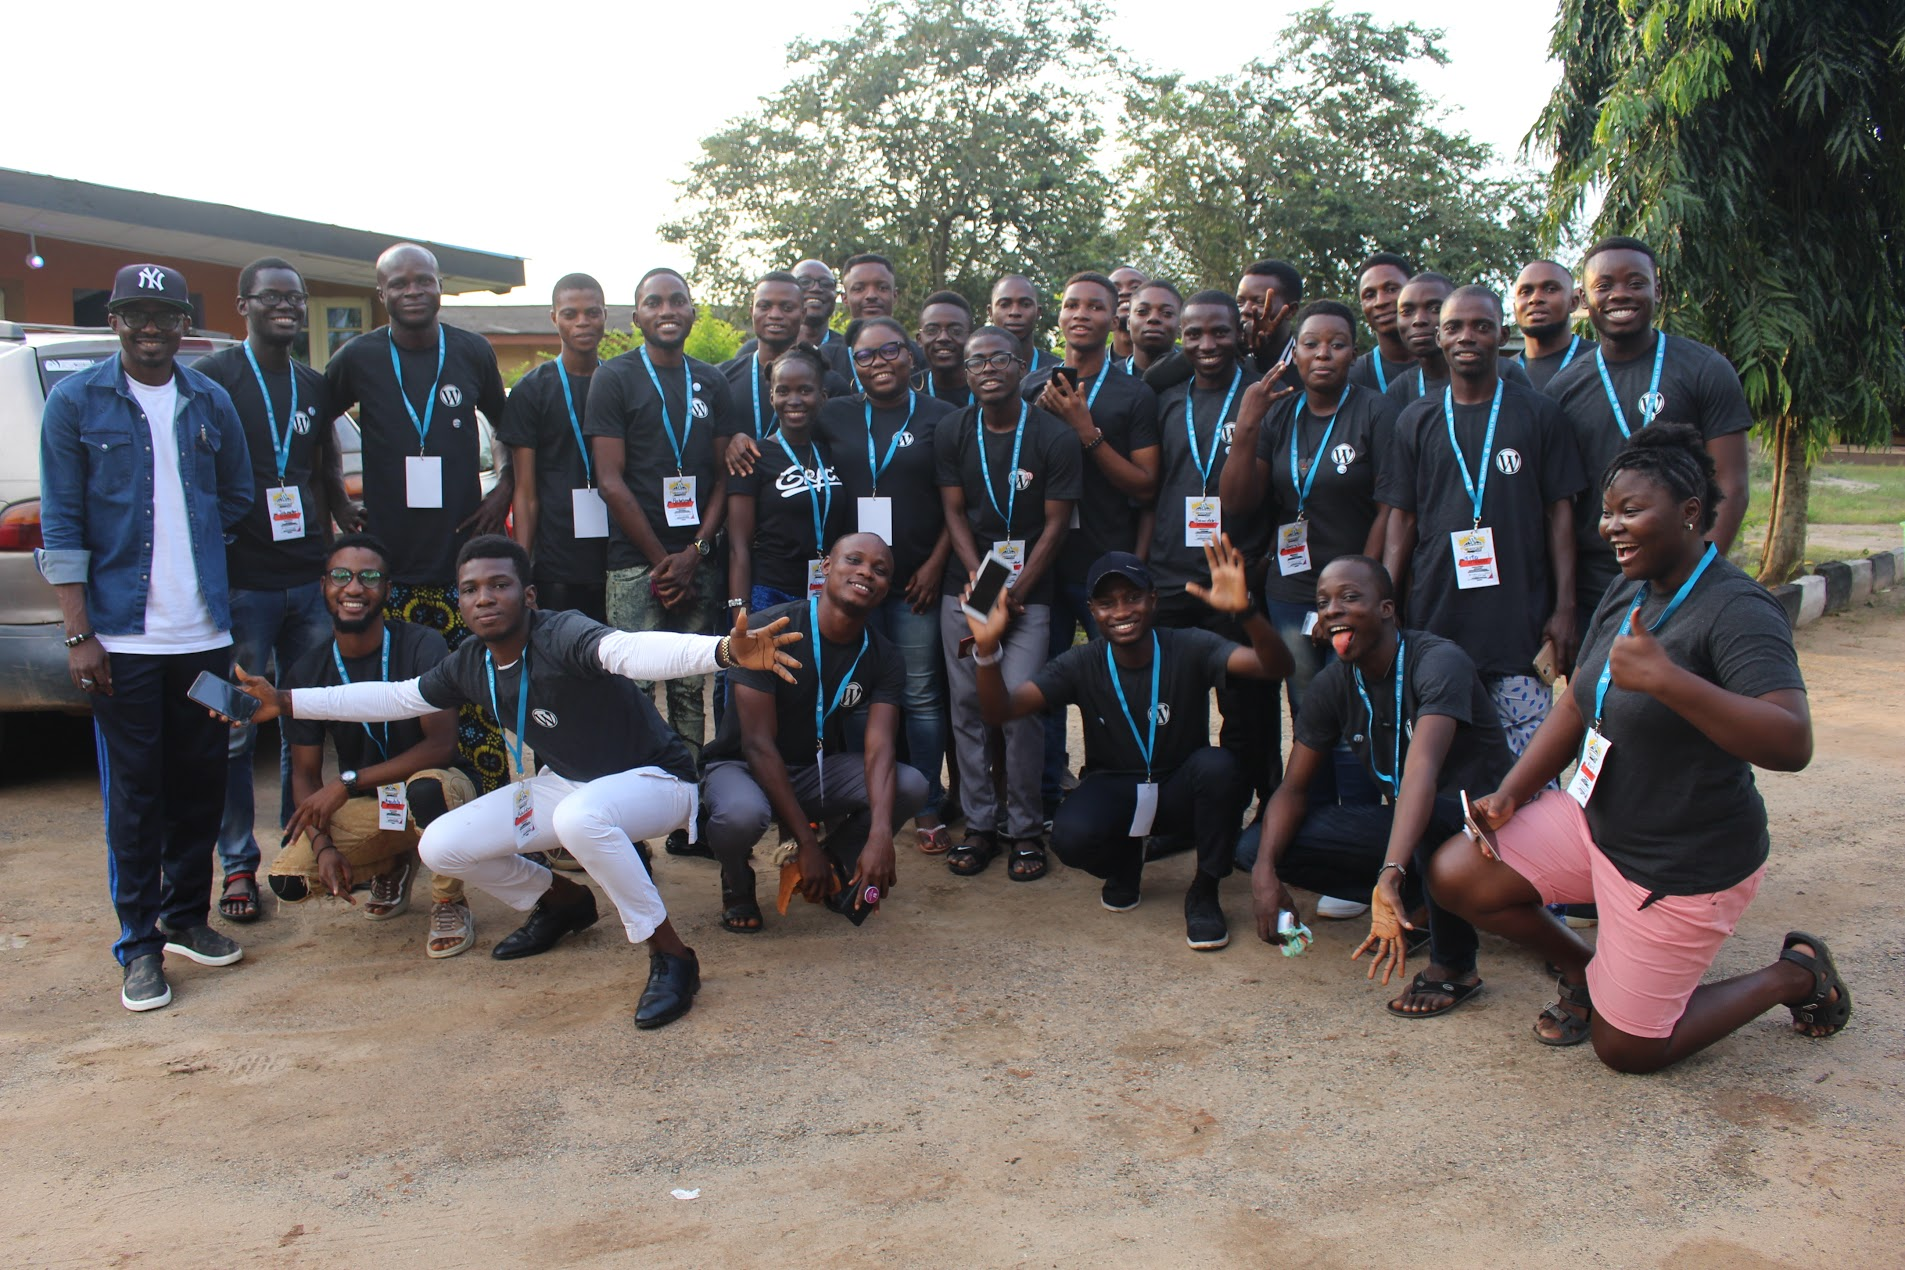 Group Picture do_action hackathon Ijebu 2019